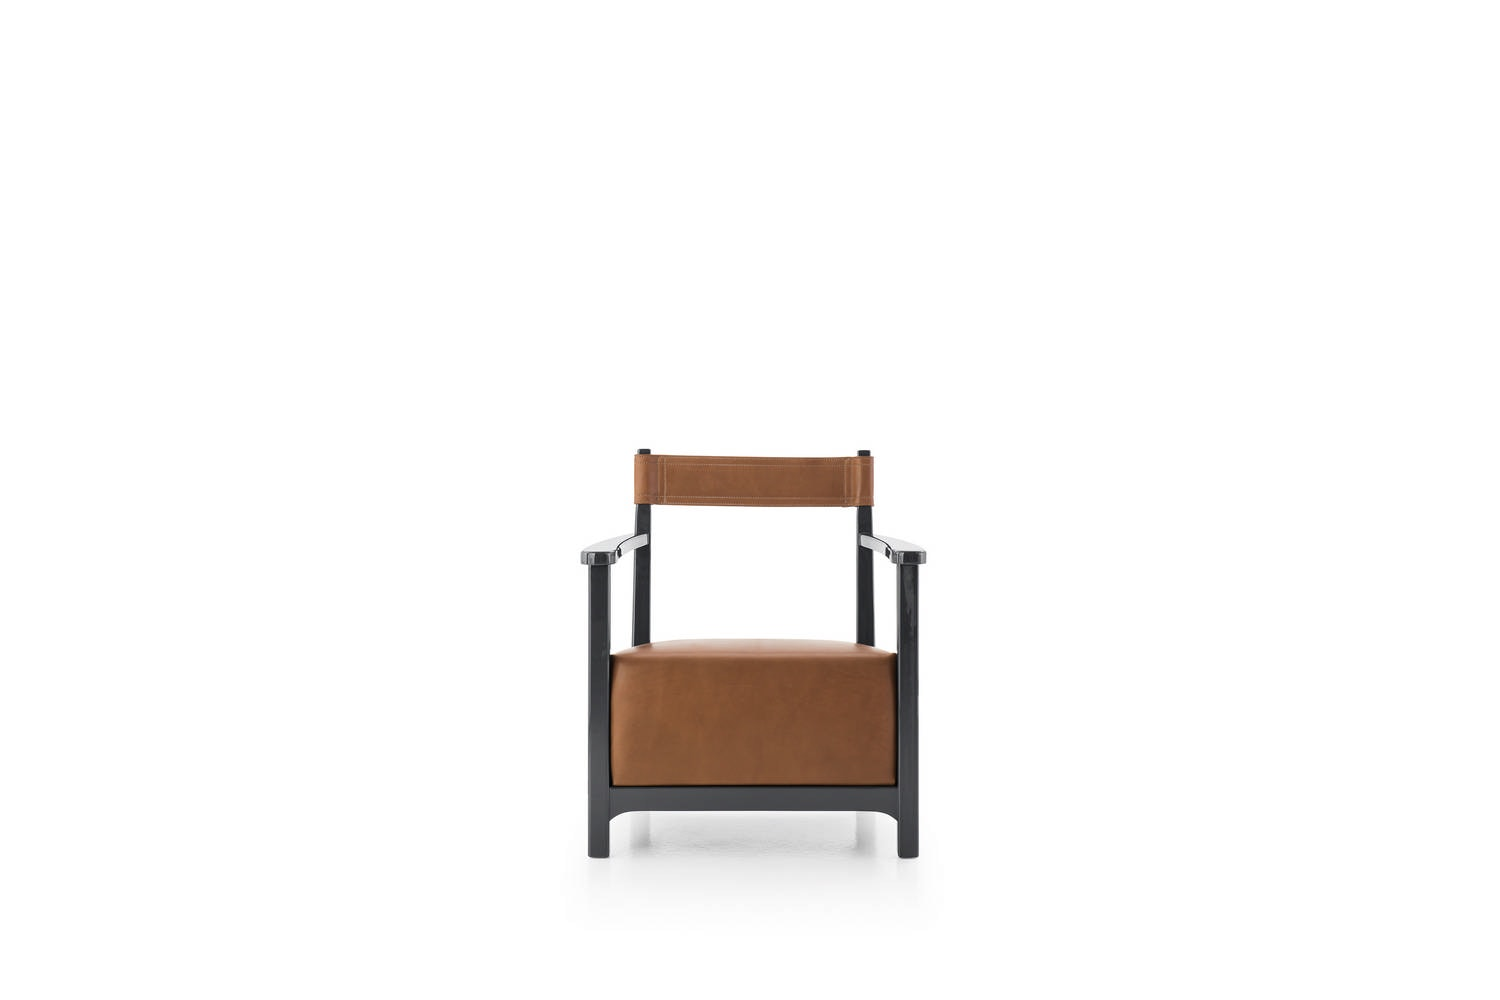 Chinotto Armchair by Luigi Caccia Dominioni for Azucena